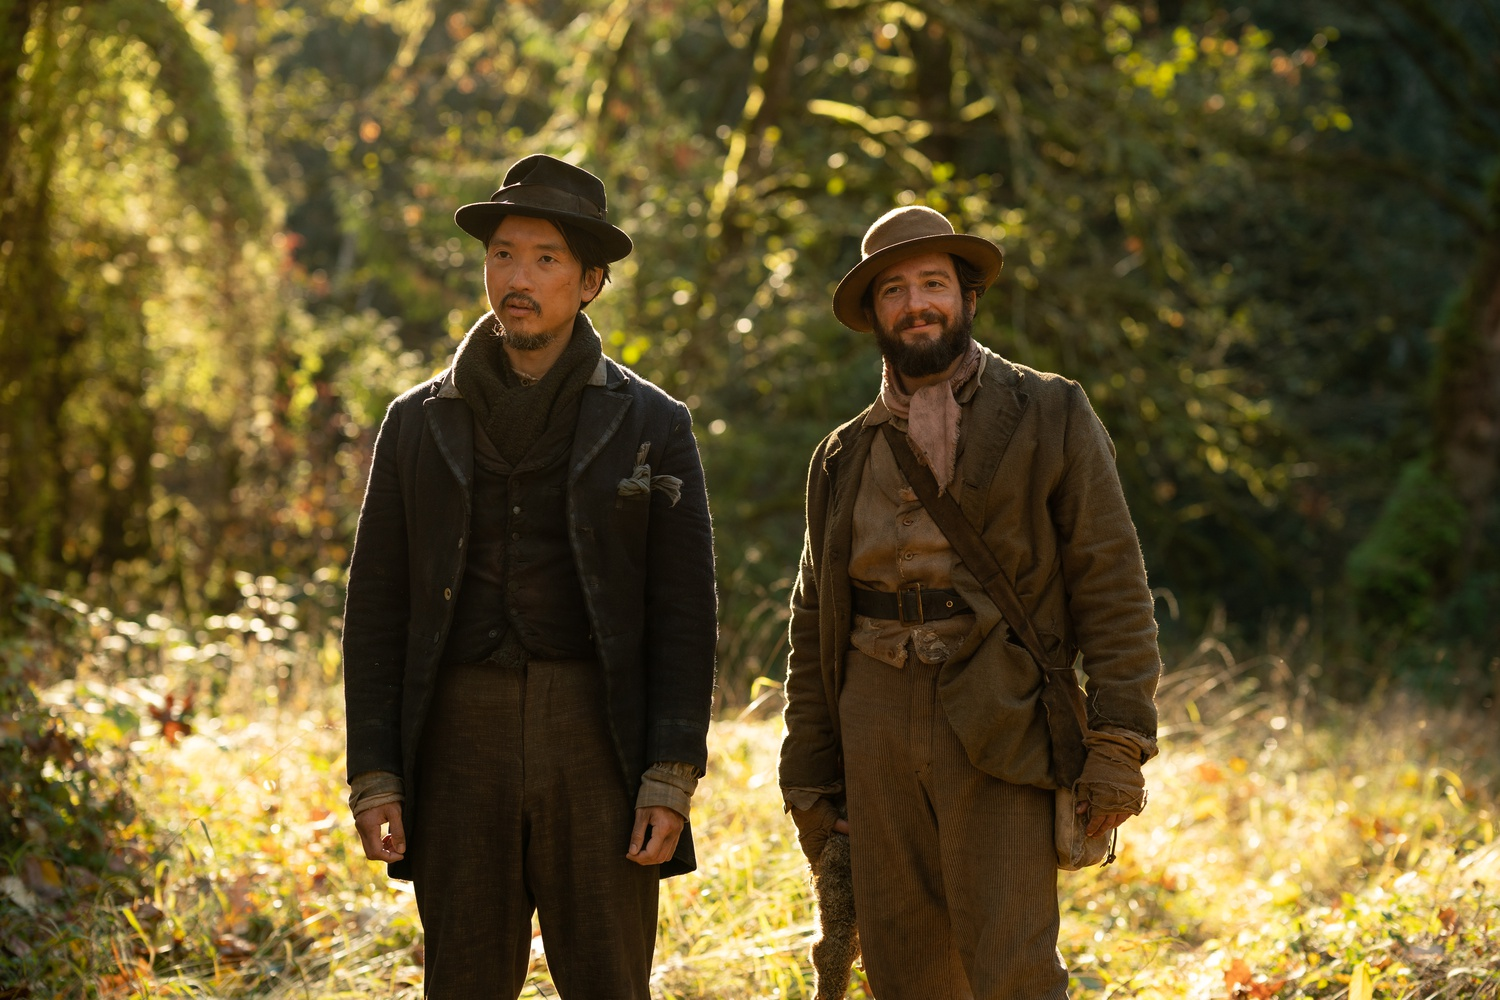 """Orion Lee (left) stars as King Lu and John Magaro (right) stars as Cookie in """"First Cow"""" (2020), directed by Kelly Reichardt."""